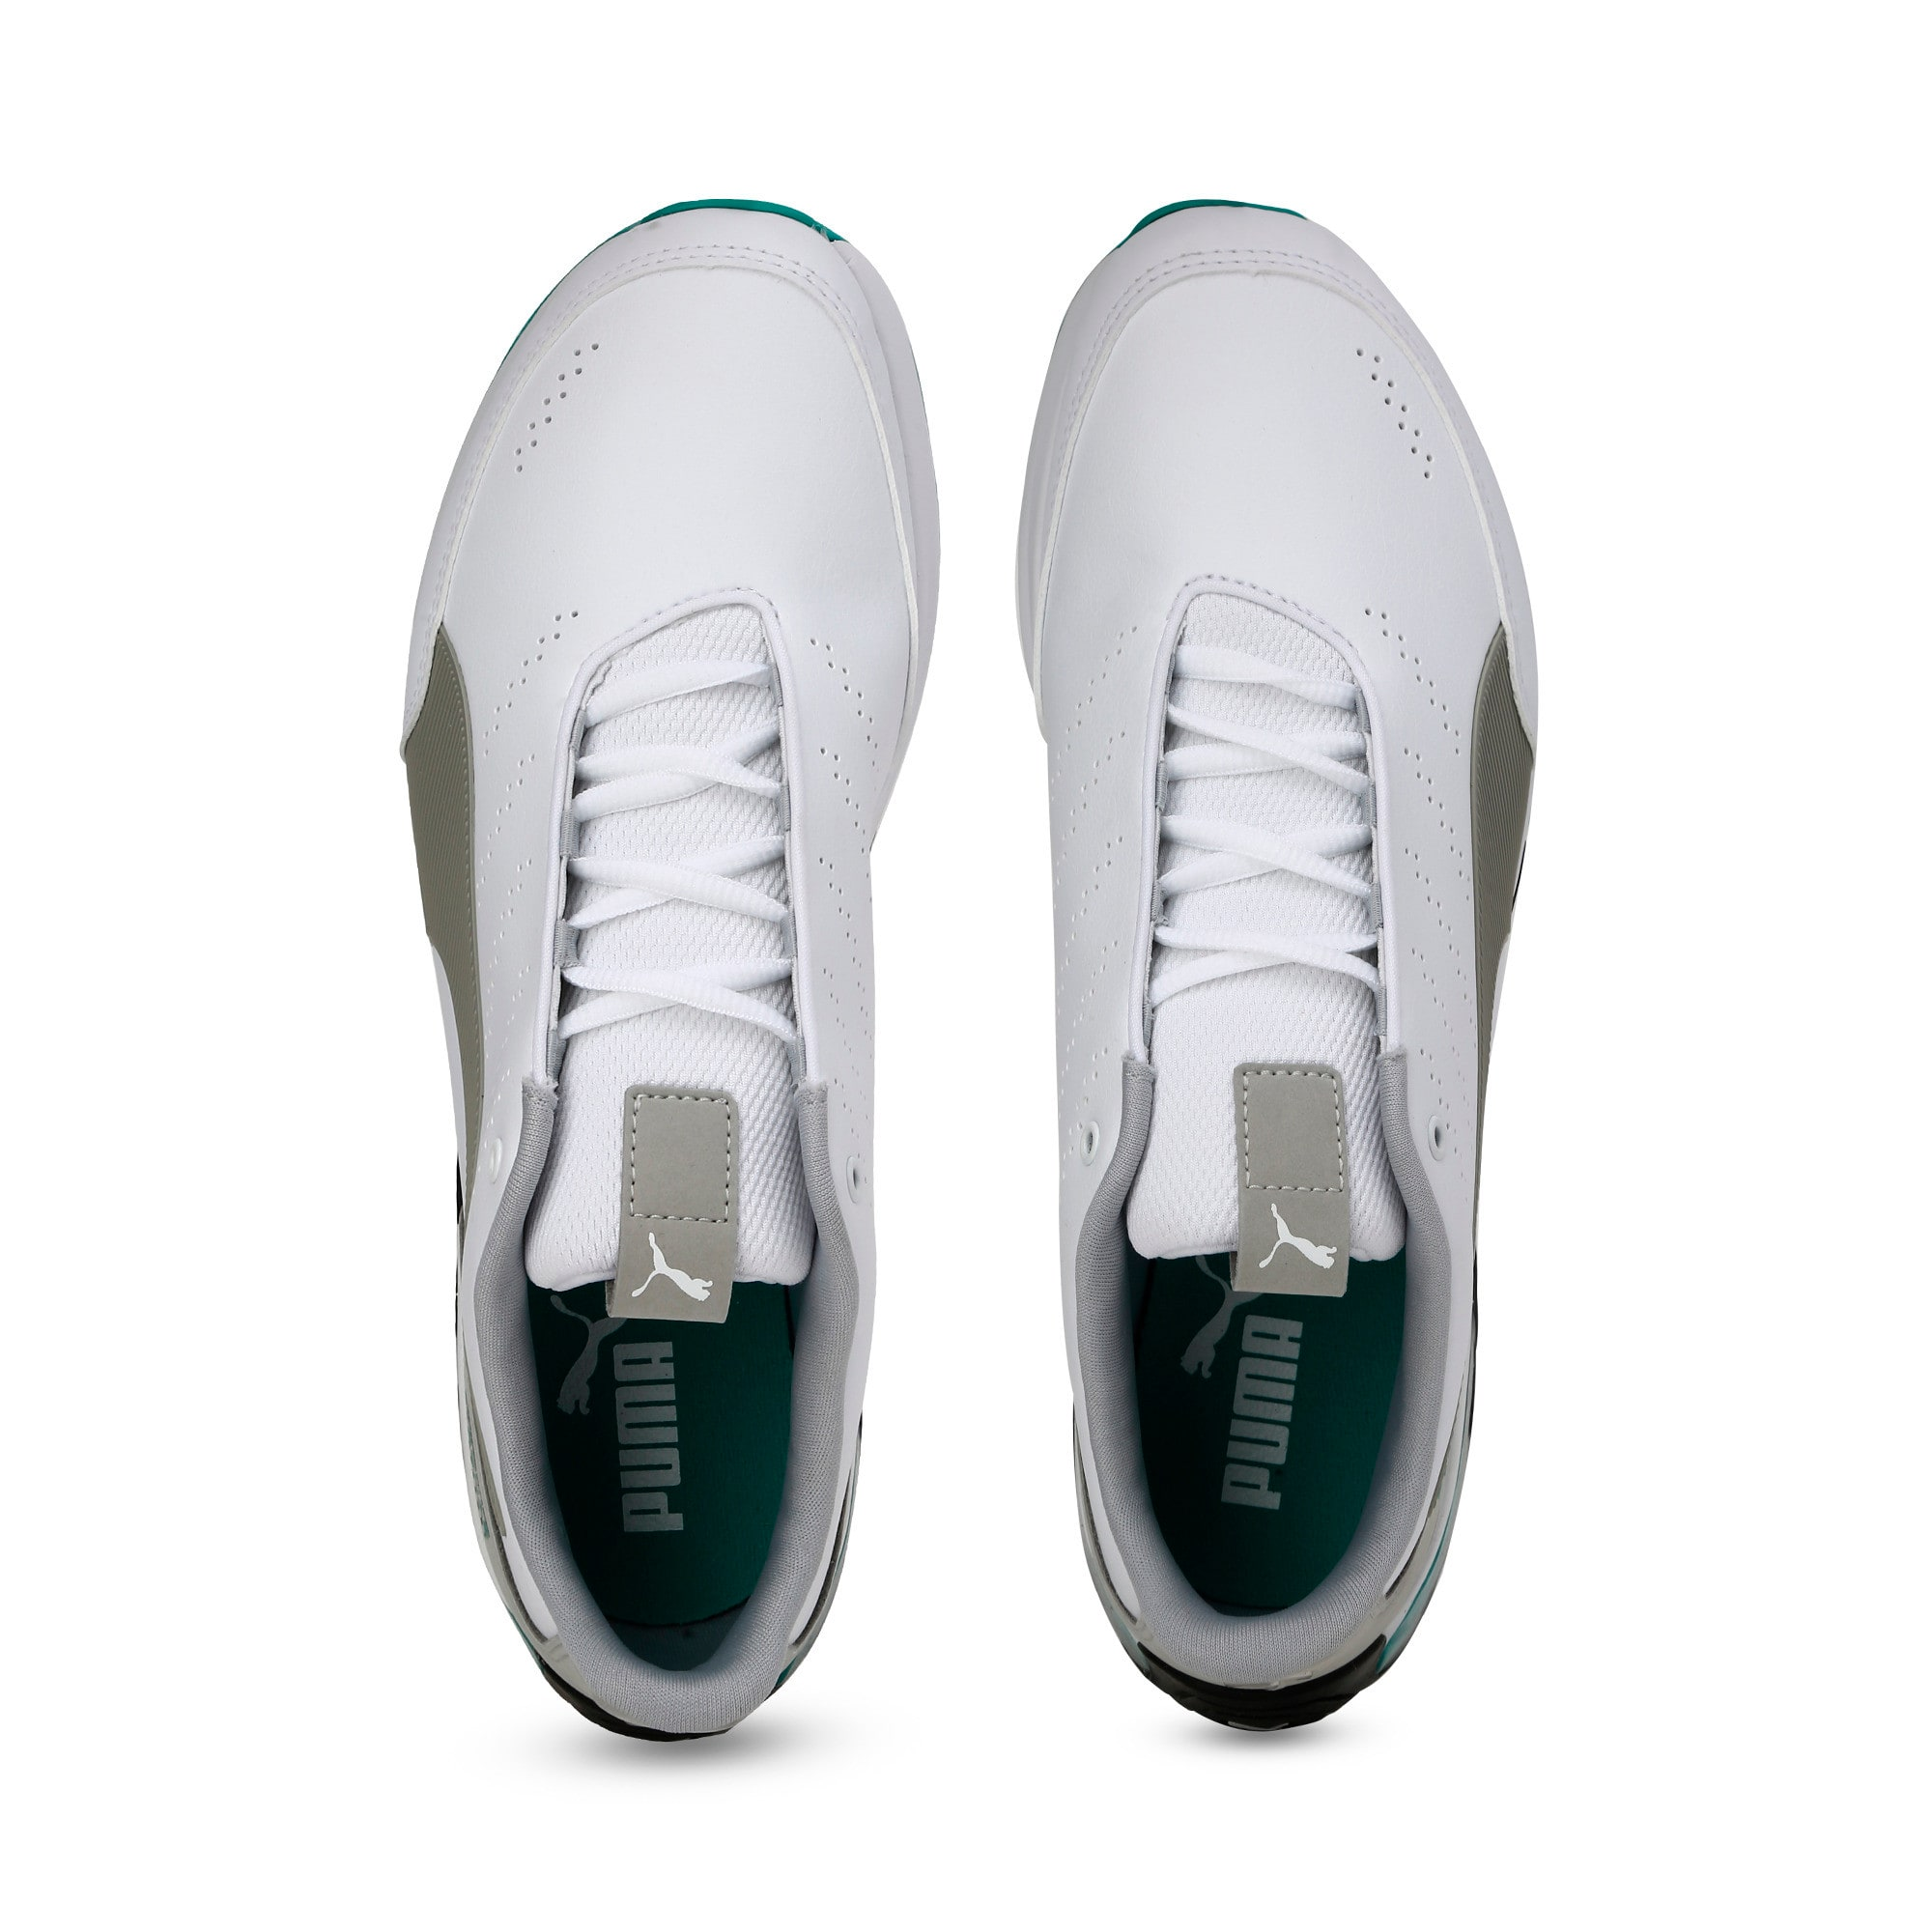 Thumbnail 8 of Mercedes AMG Petronas Motorsport Kart Cat X Trainers, Puma White-Mercedes Silver, medium-IND